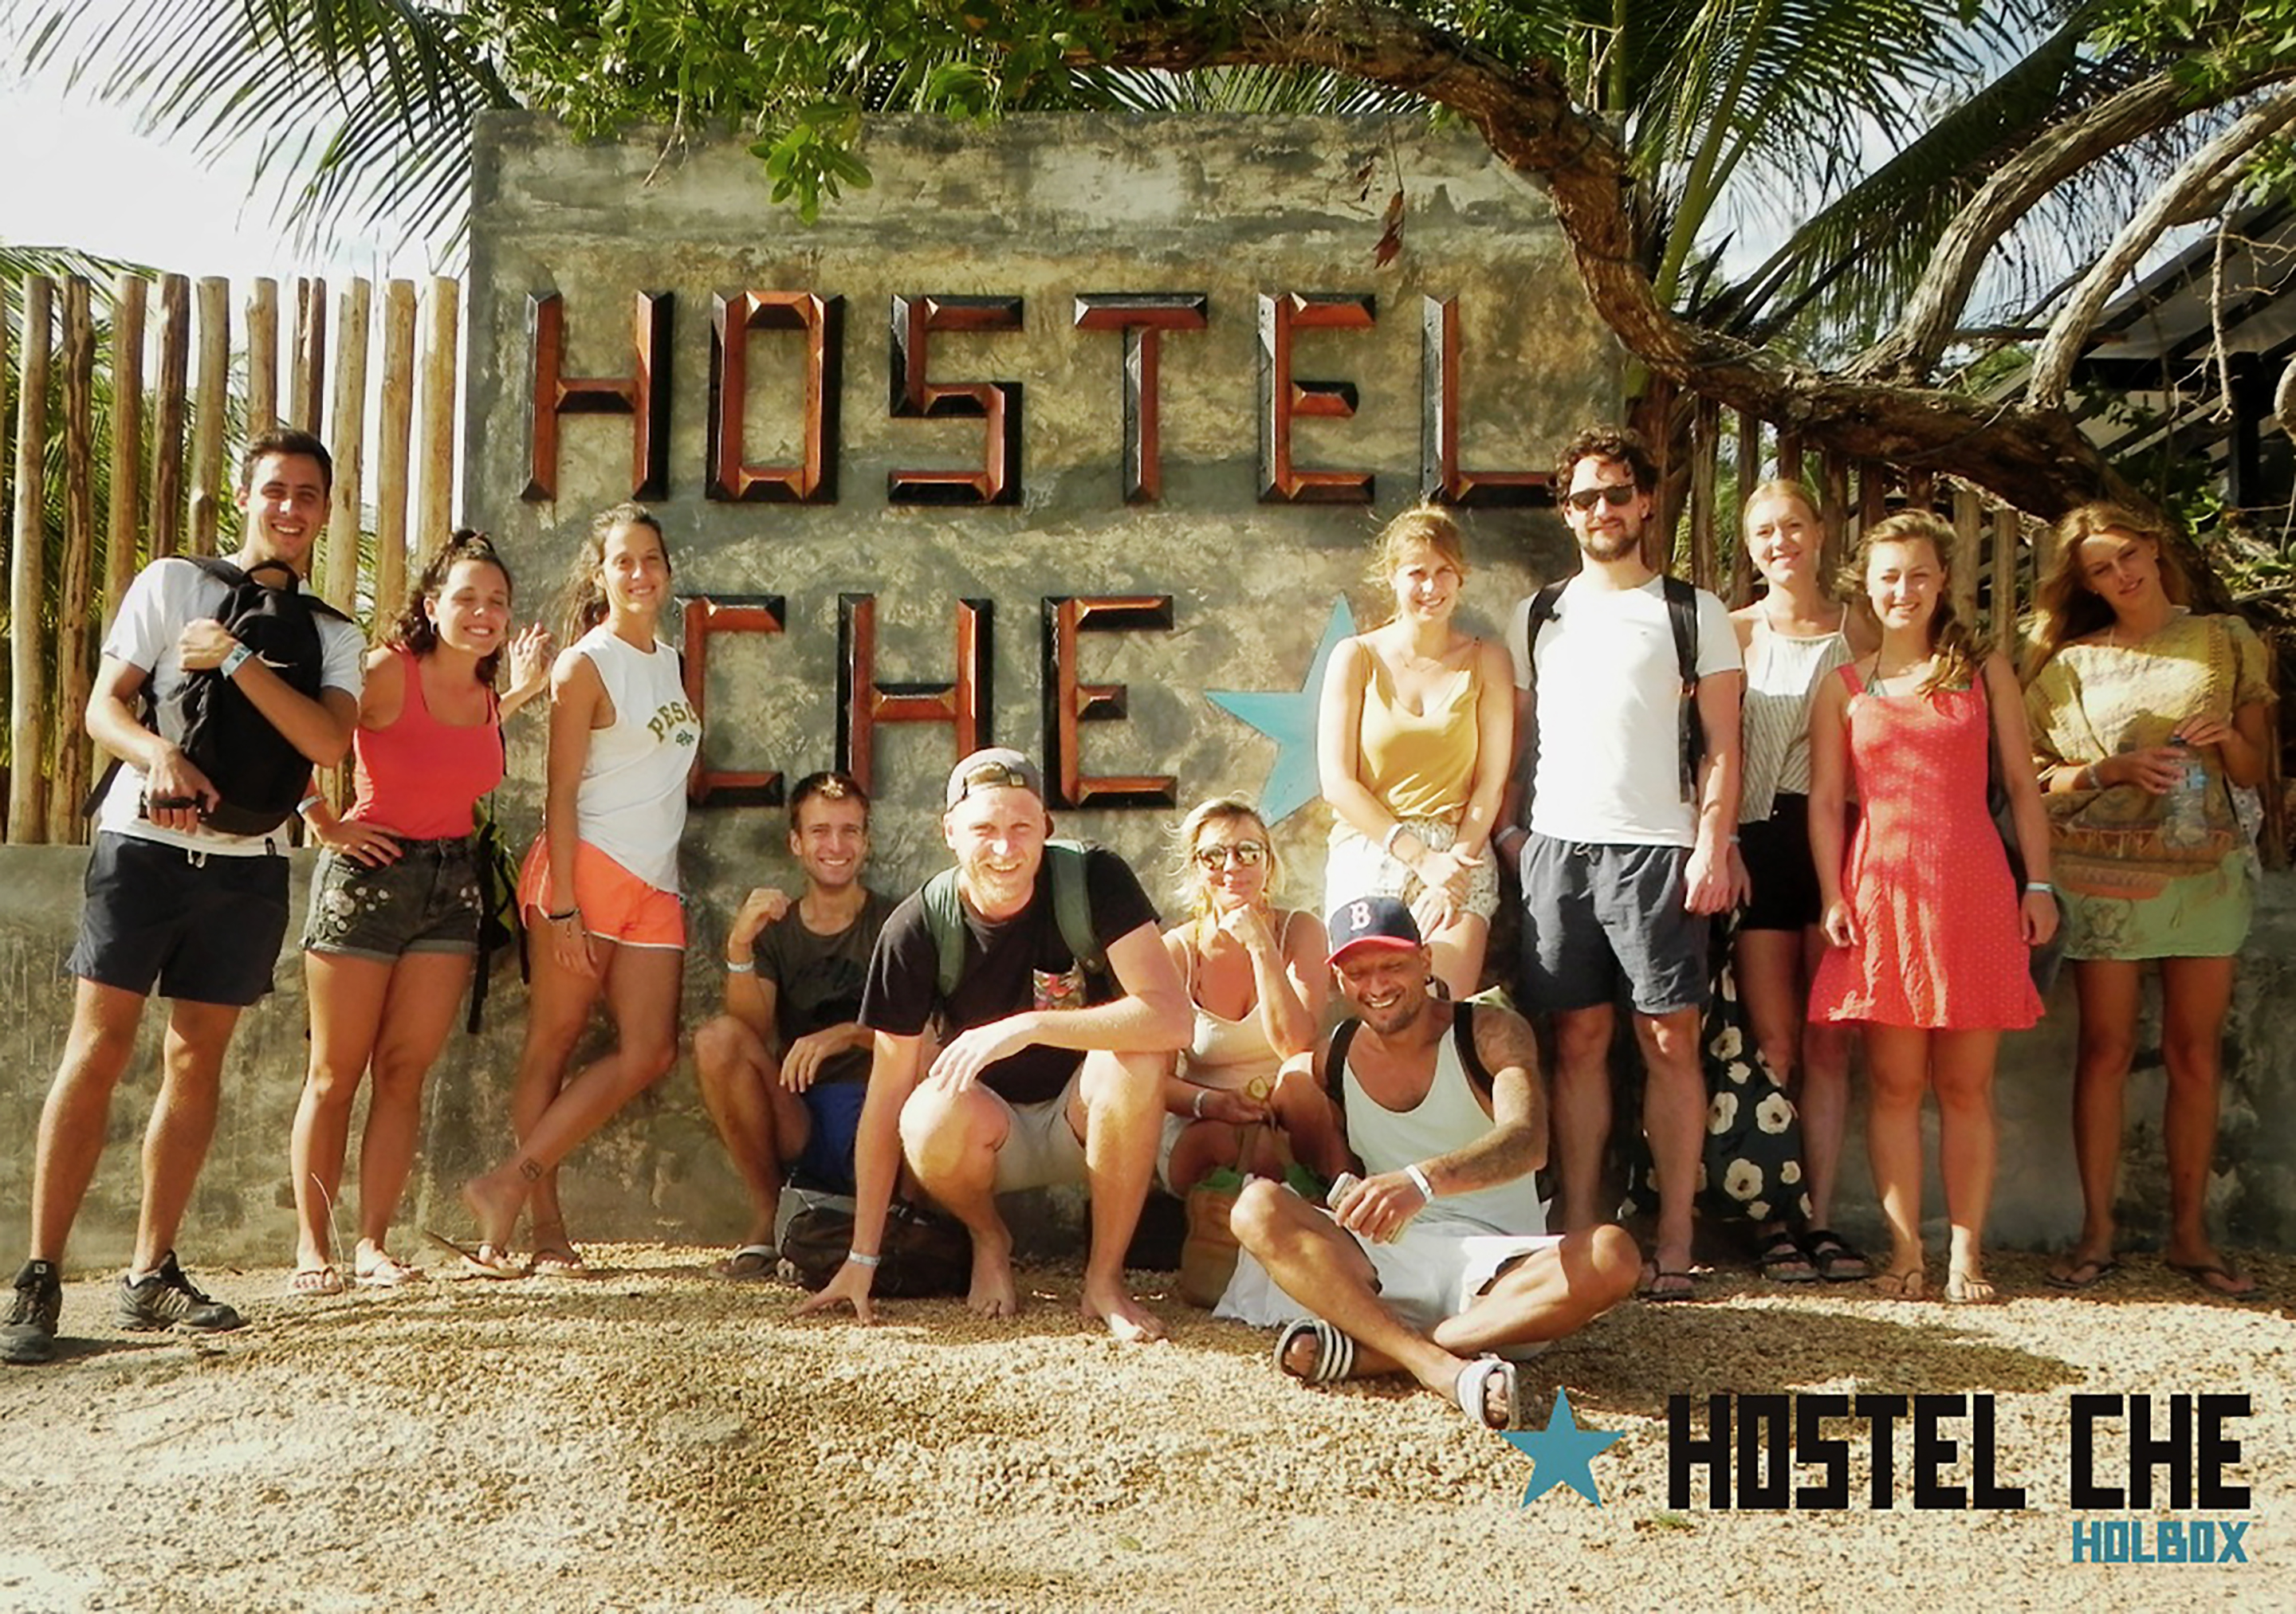 Hostel Che Holbox